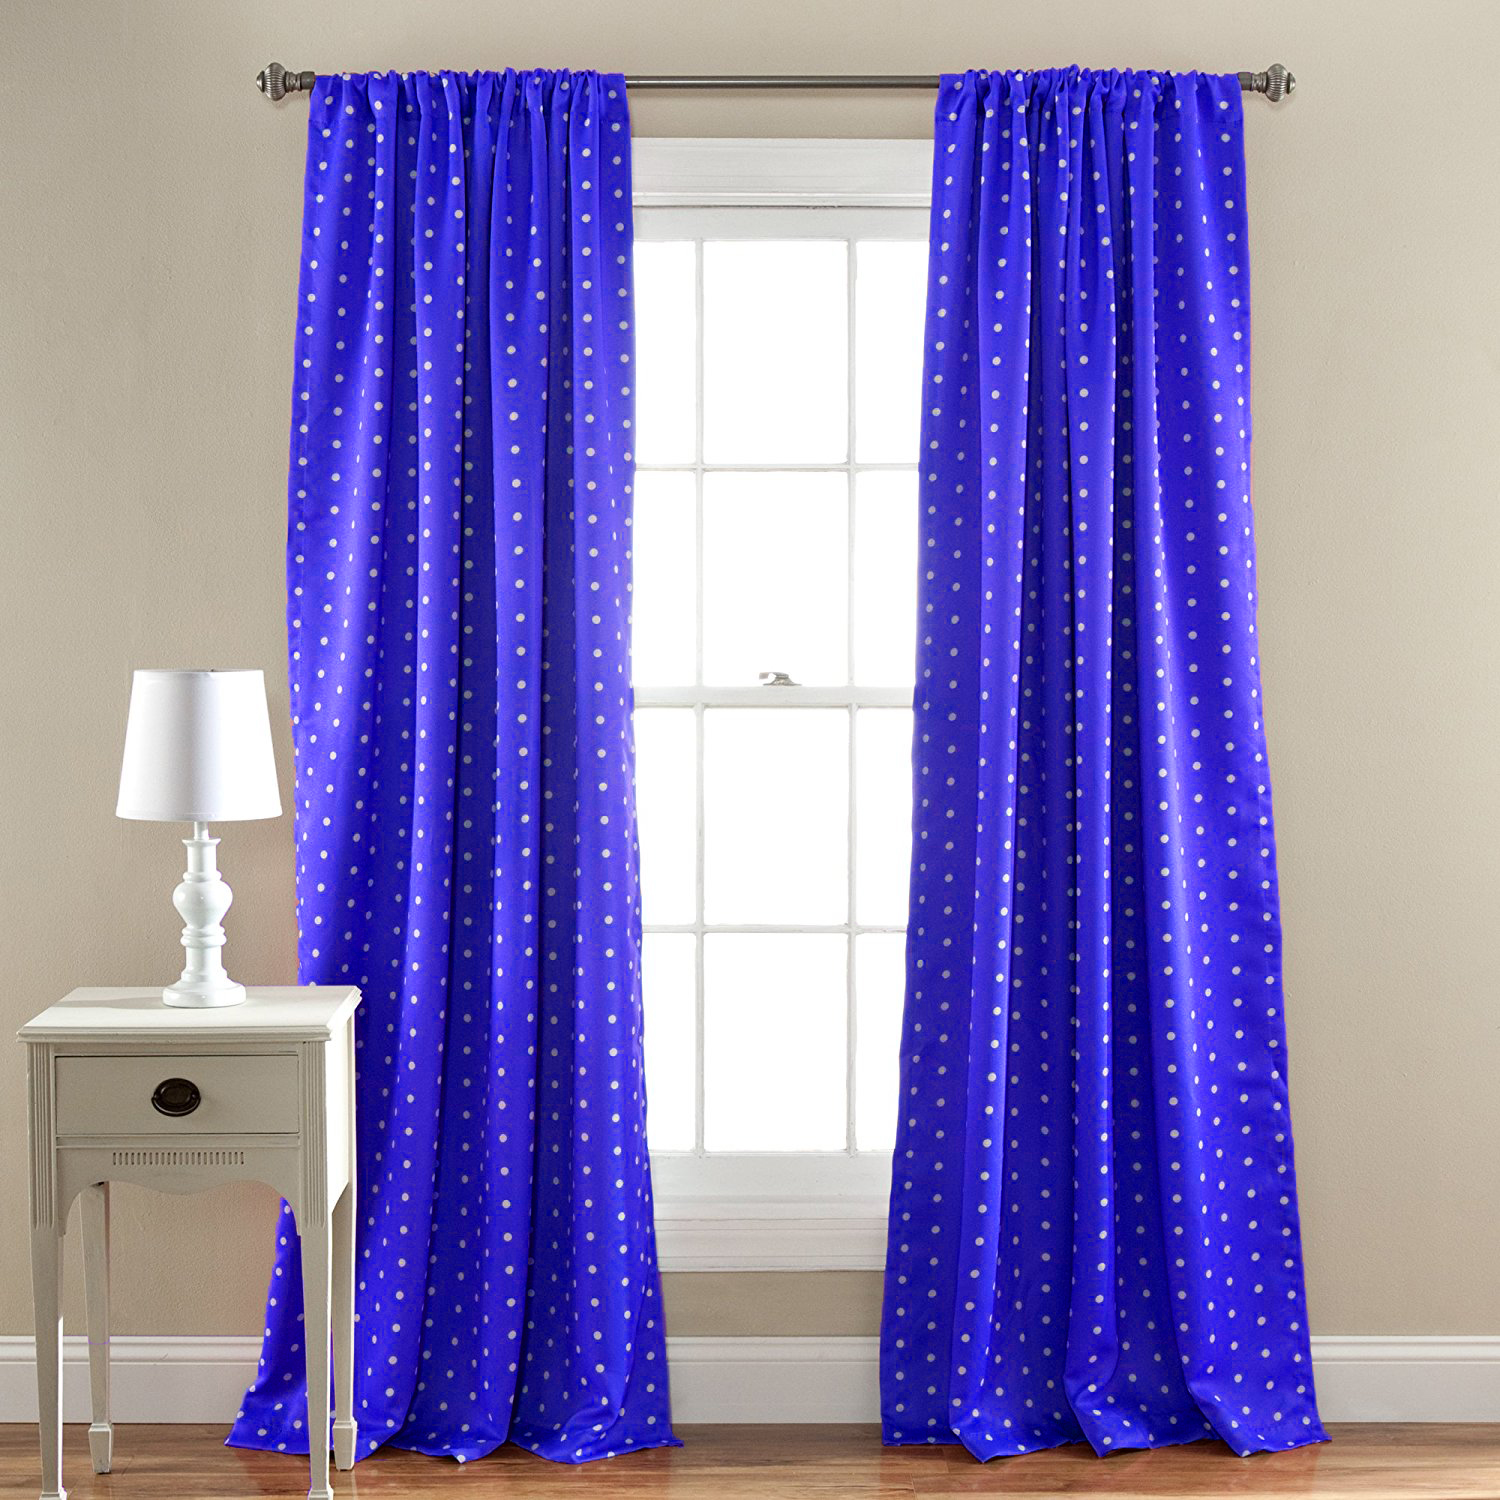 2-Pack  Polka Dot 54  x 84  Energy Saving Blackout Curtain Panels